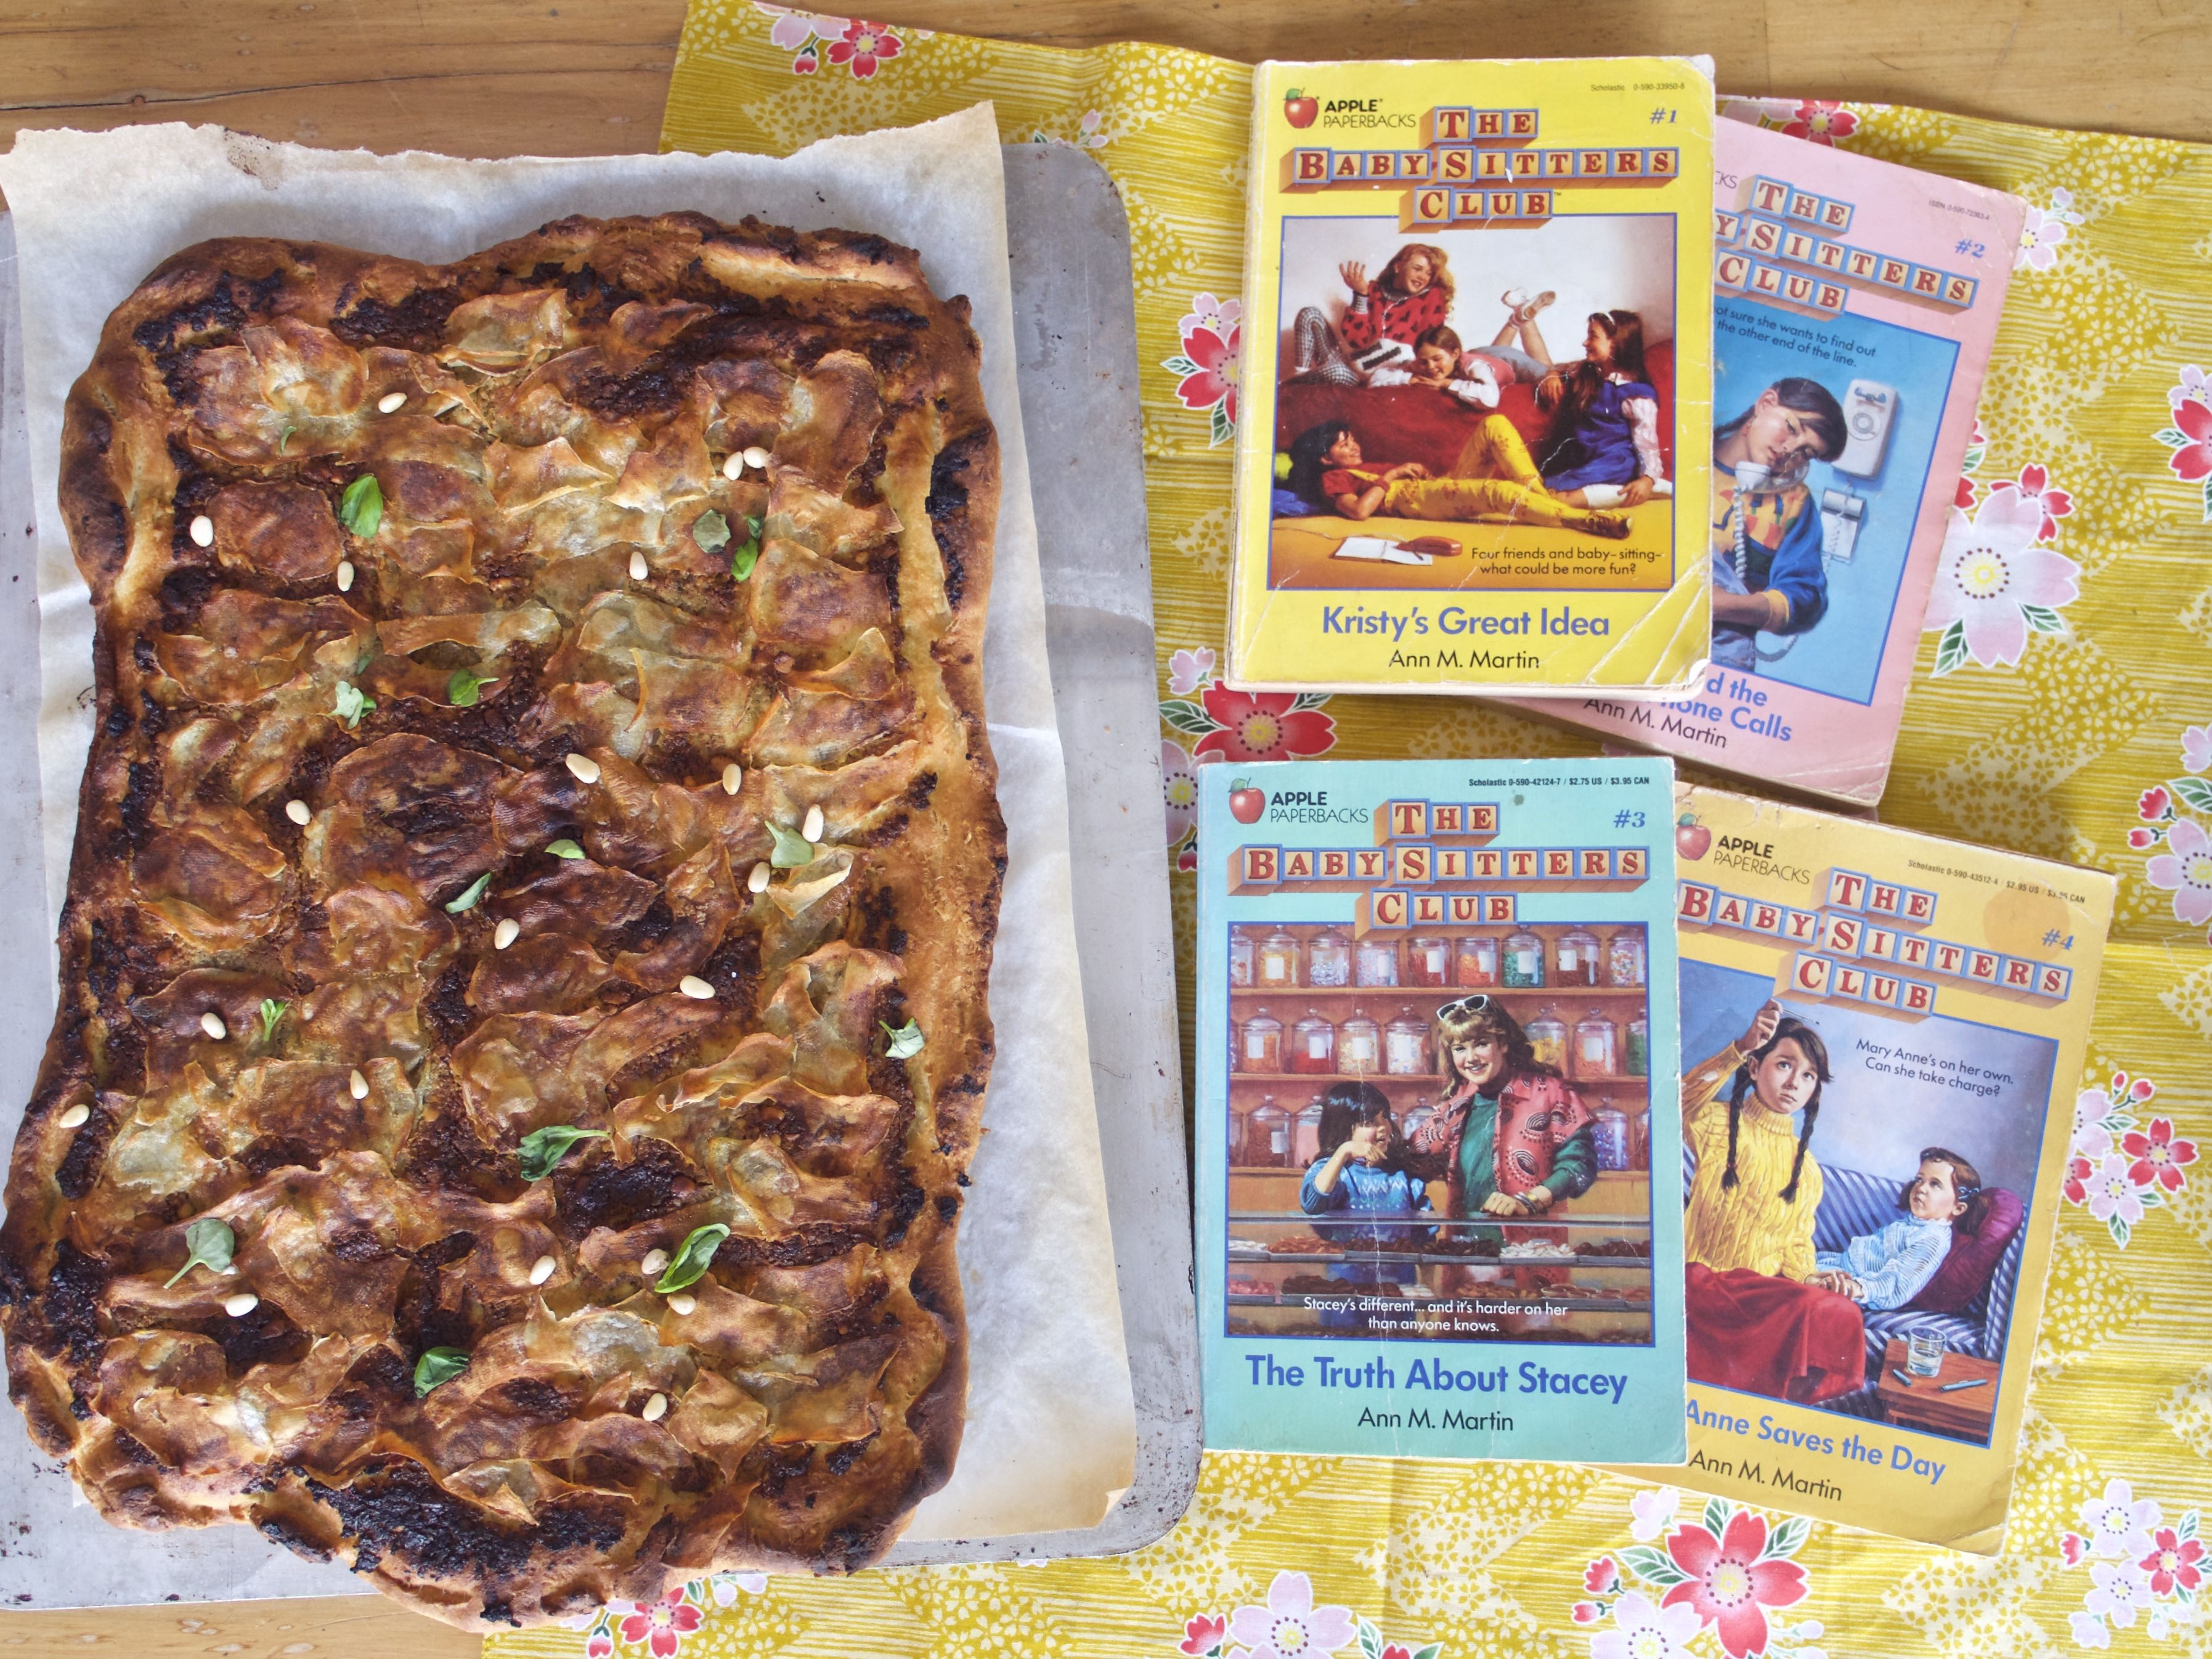 A rectangular sheet pan pizza with crispy, browned potatoes and basil and pine nuts, next to 4 retro Baby-Sitters Club books